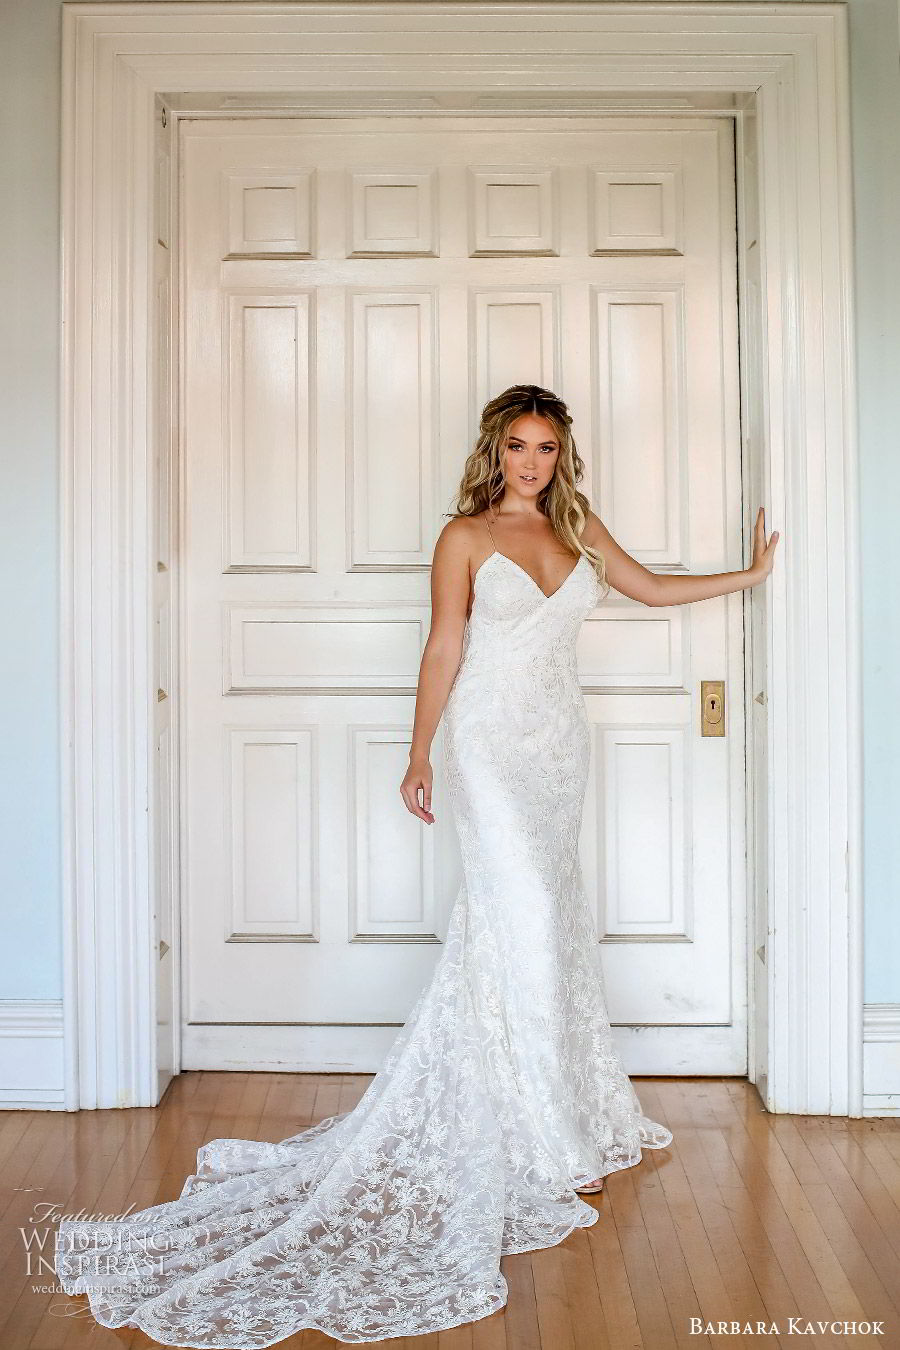 barbara kavchok fall 2019 bridal sleeveless thin straps sweetheart neckline lace sheath wedding dress (9) mv low back boho elegant romantic